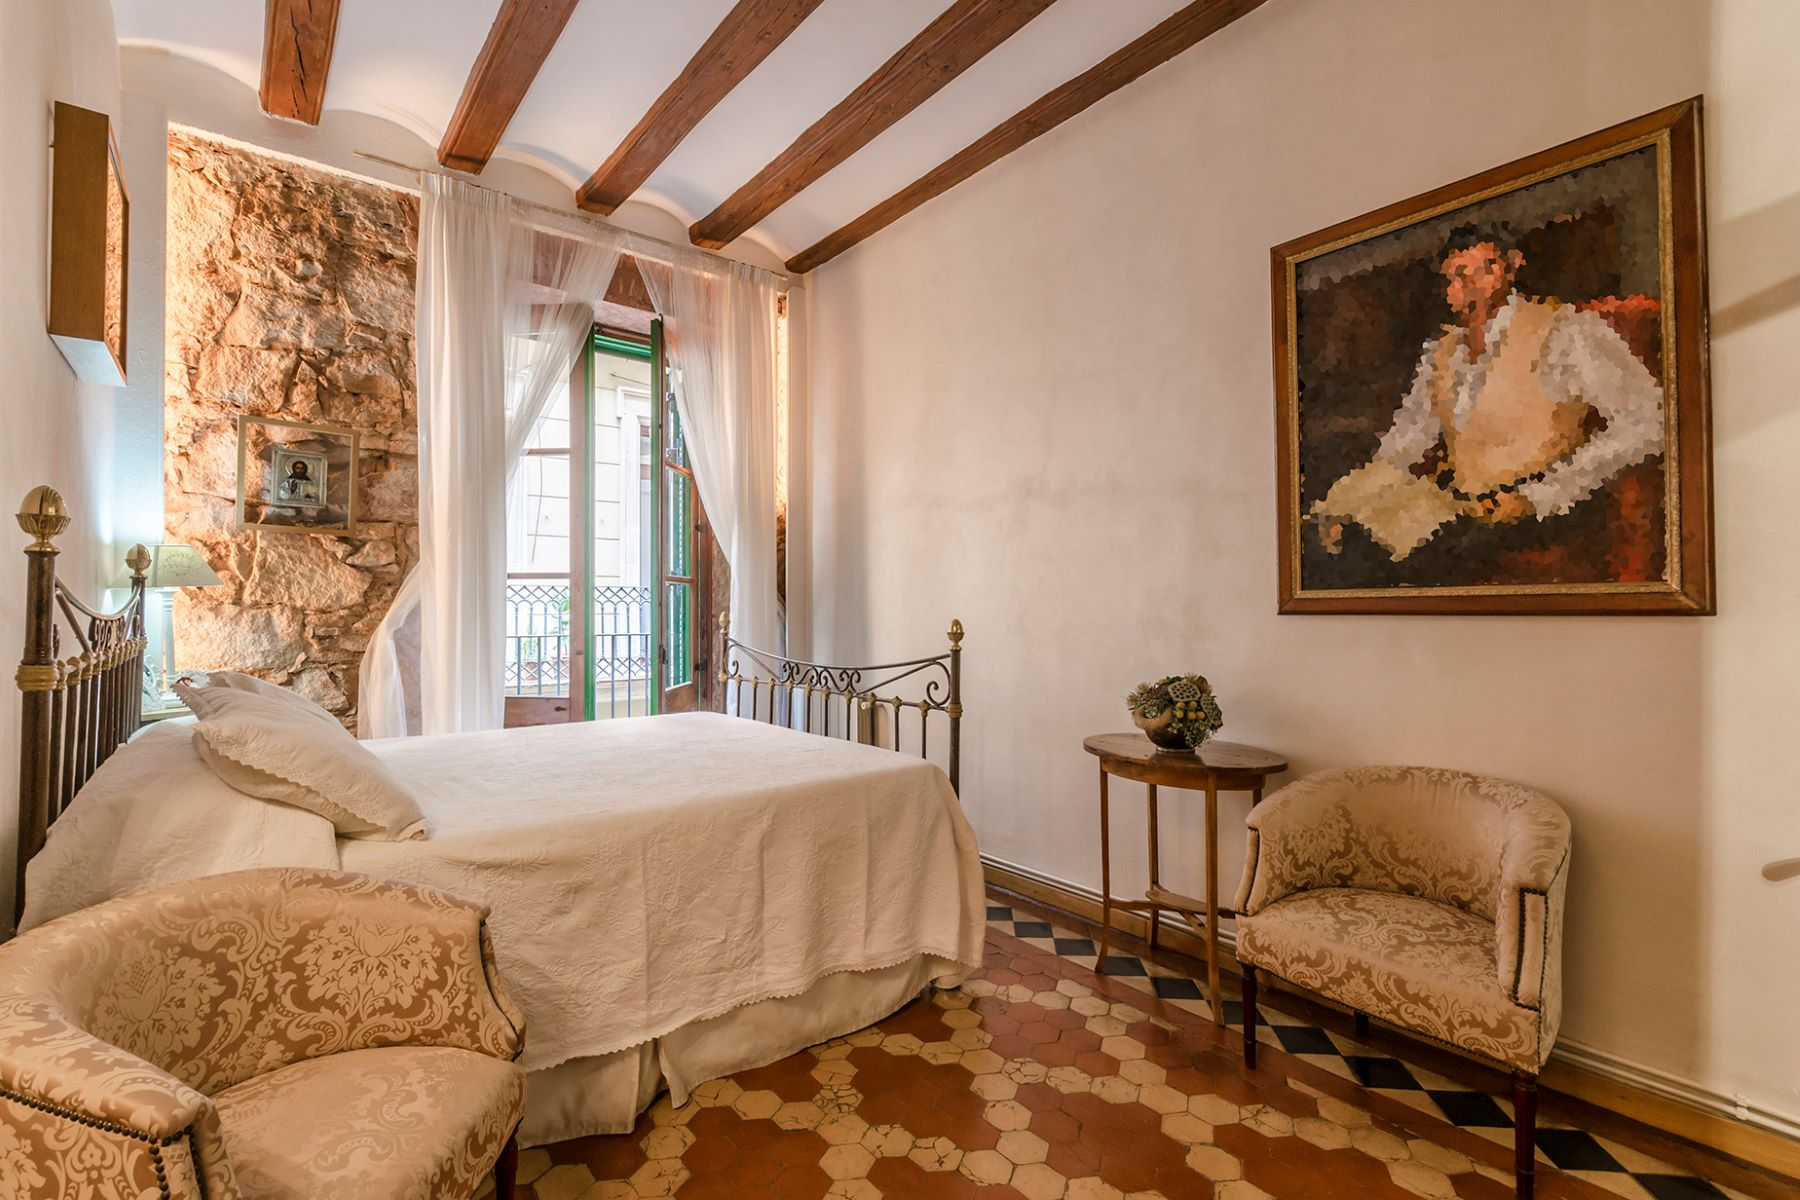 Apartment for Sale at Apartment with authentic character in the Gothic Quarter Barcelona City, Barcelona, 08002 Spain